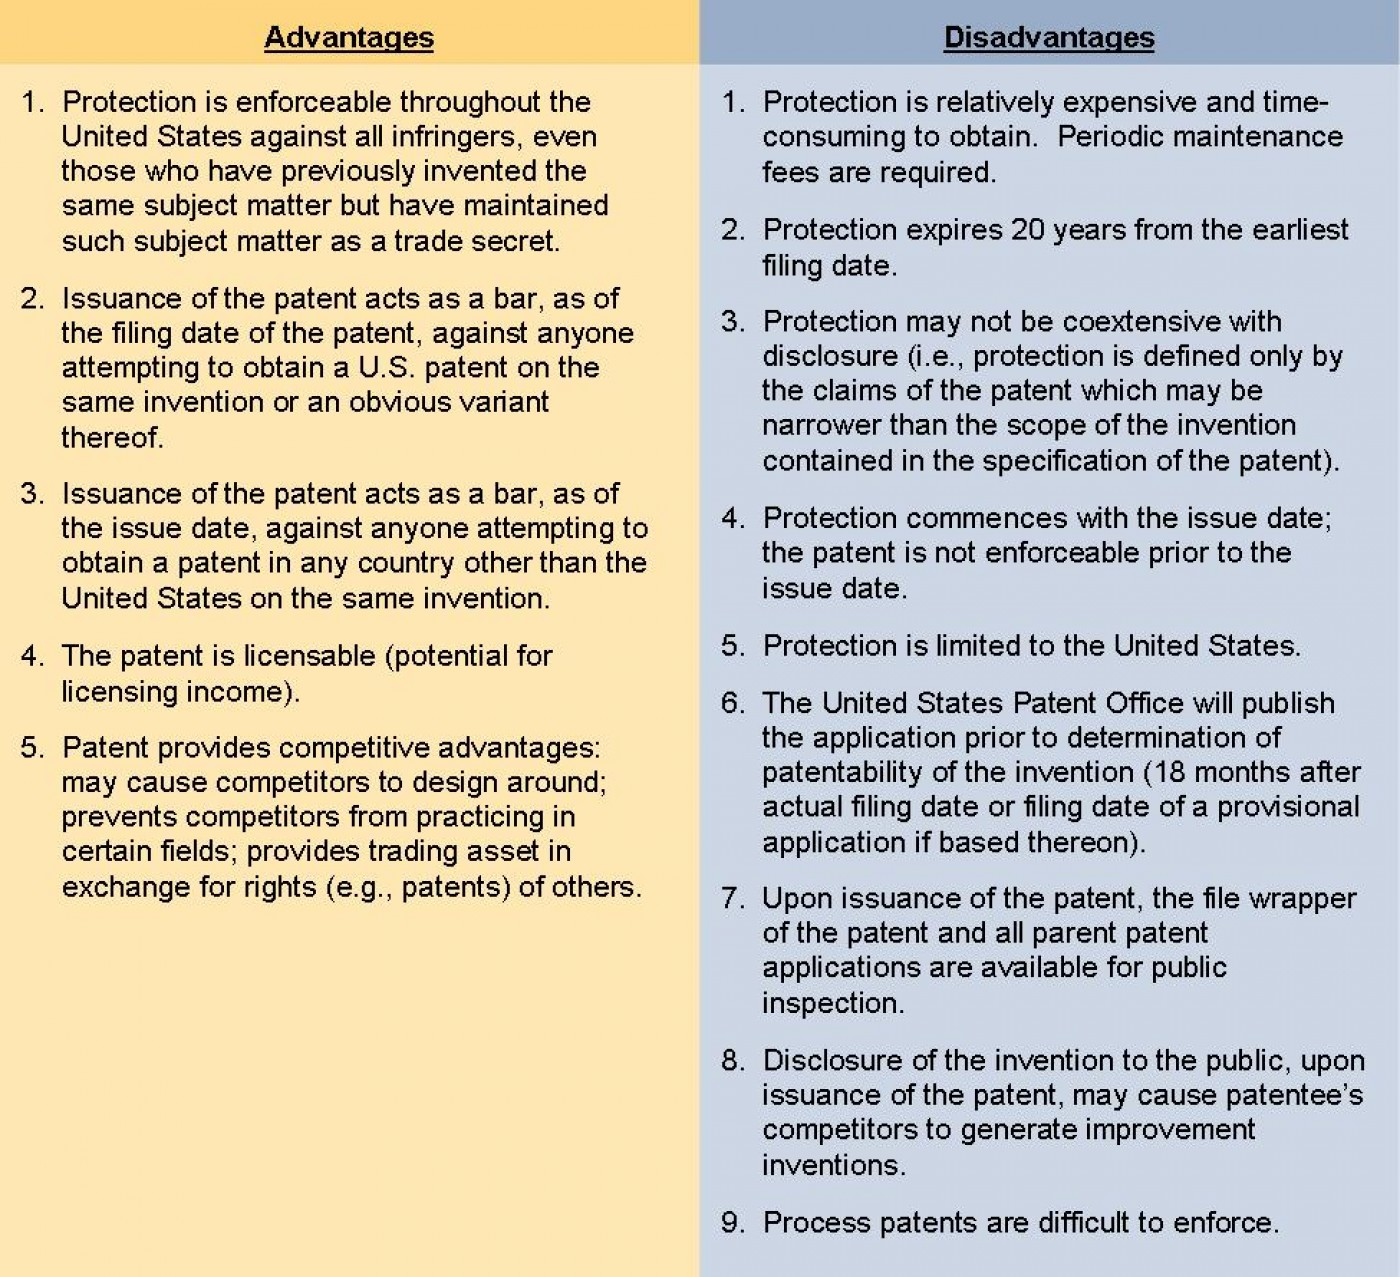 027 News87pic2 Advantage And Disadvantage Of Science Essay Shocking Advantages Disadvantages In Tamil Pdf With Quotes 1400